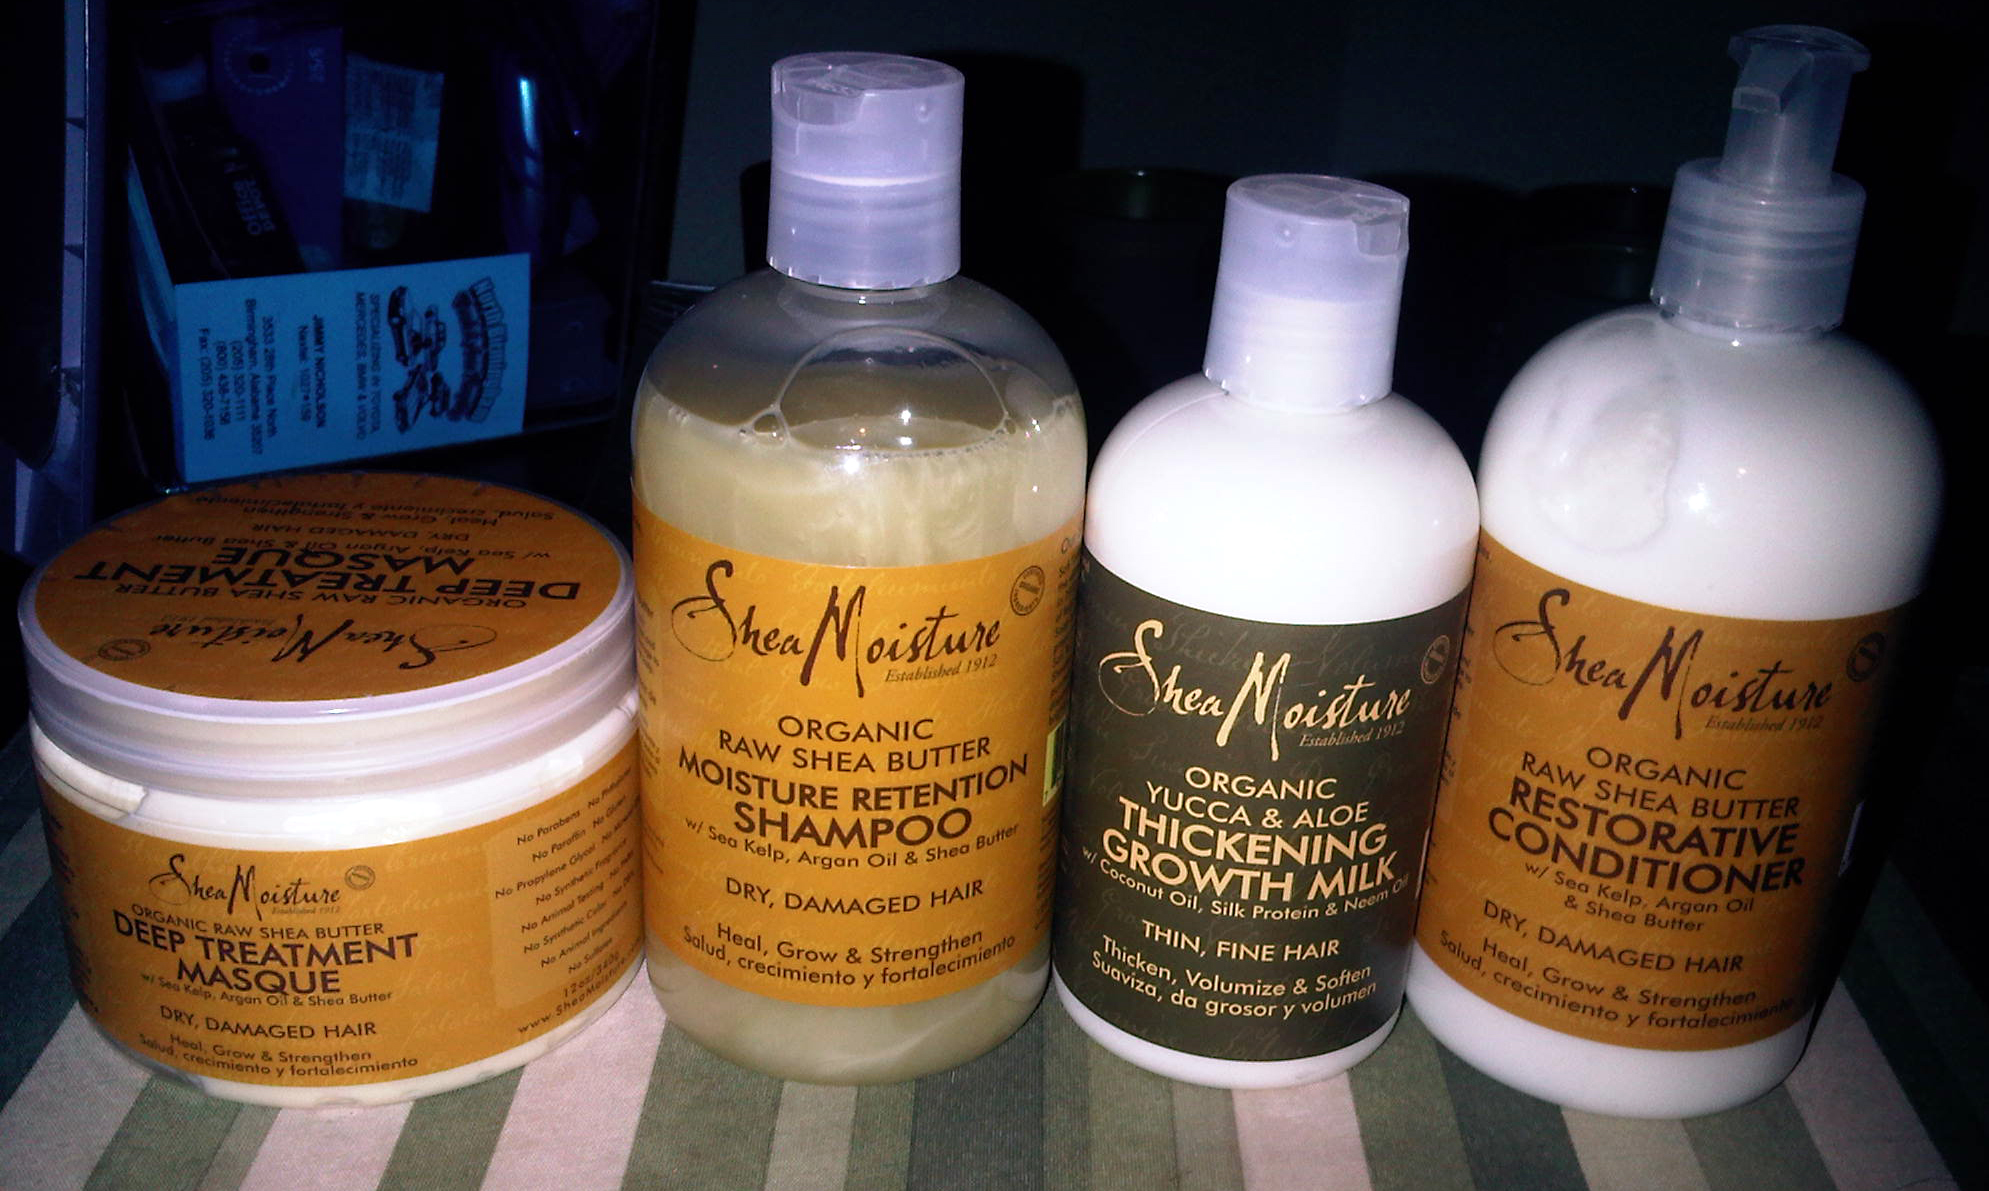 My mom will be using and reviewing these products